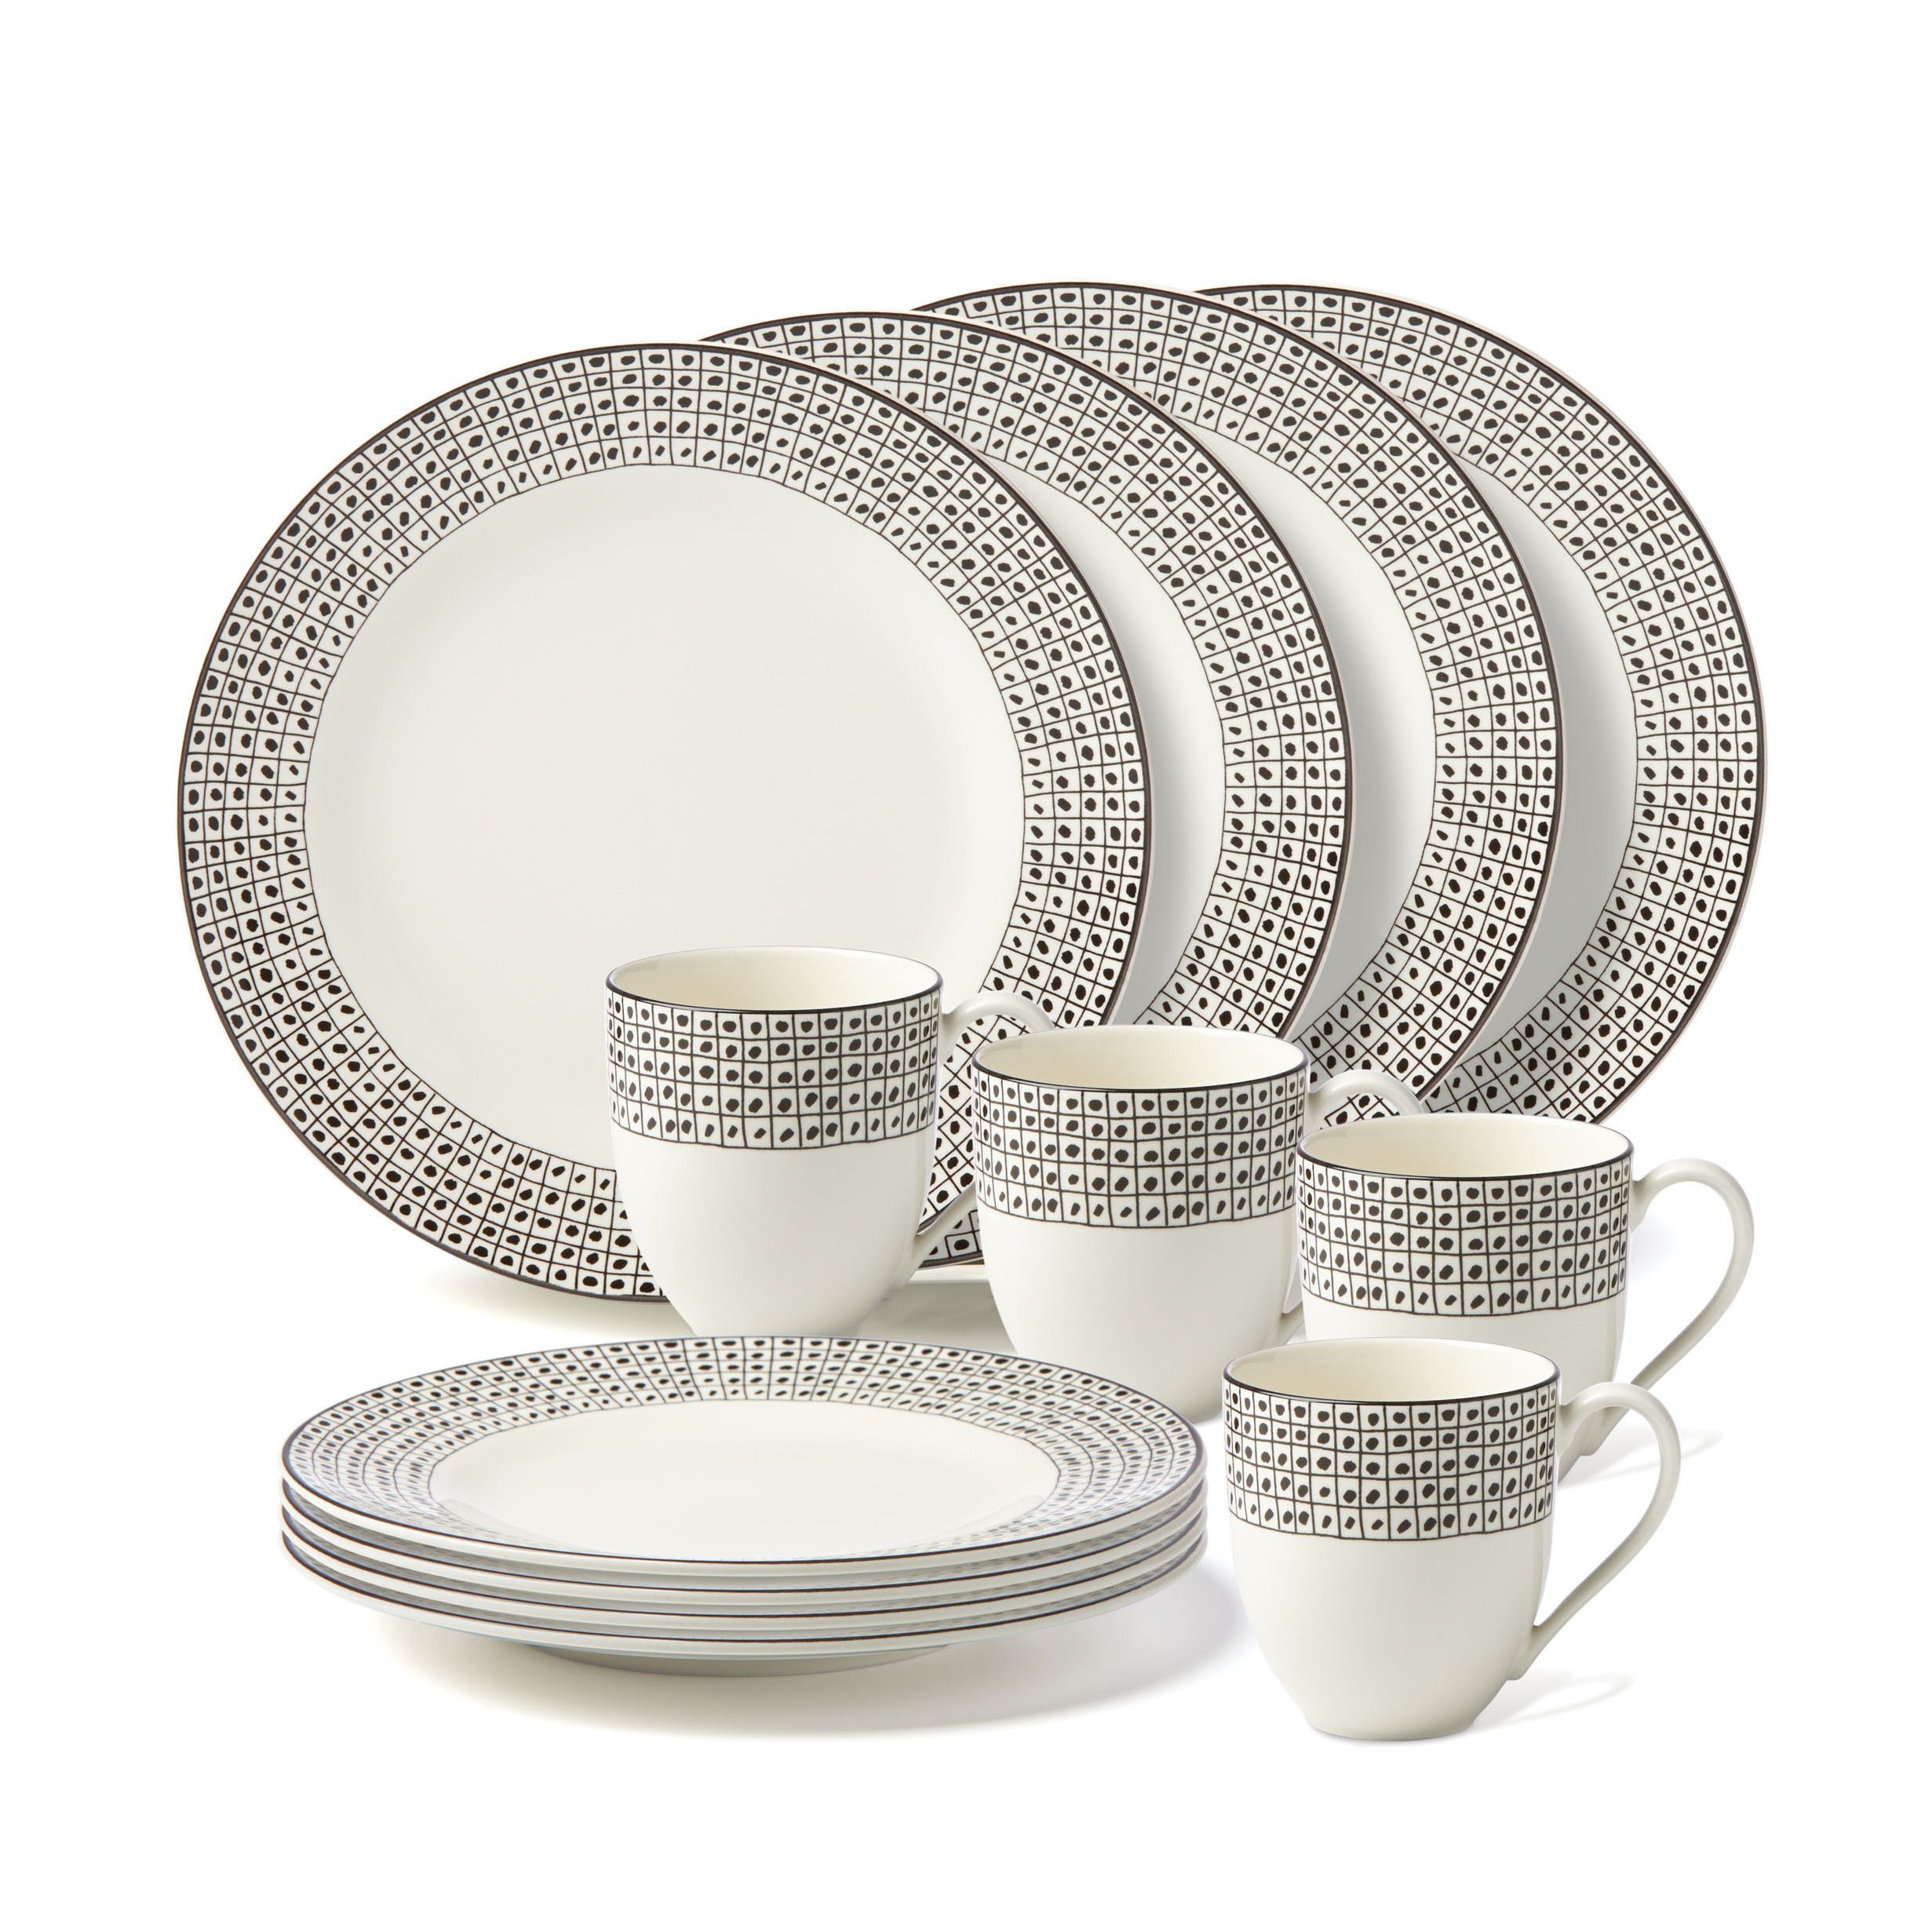 Lenox Around the Table Dot 12-piece Dinnerware Set  sc 1 th 225 & Lenox Around the Table Dot 12-piece Dinnerware Set (Black \u0026 White ...